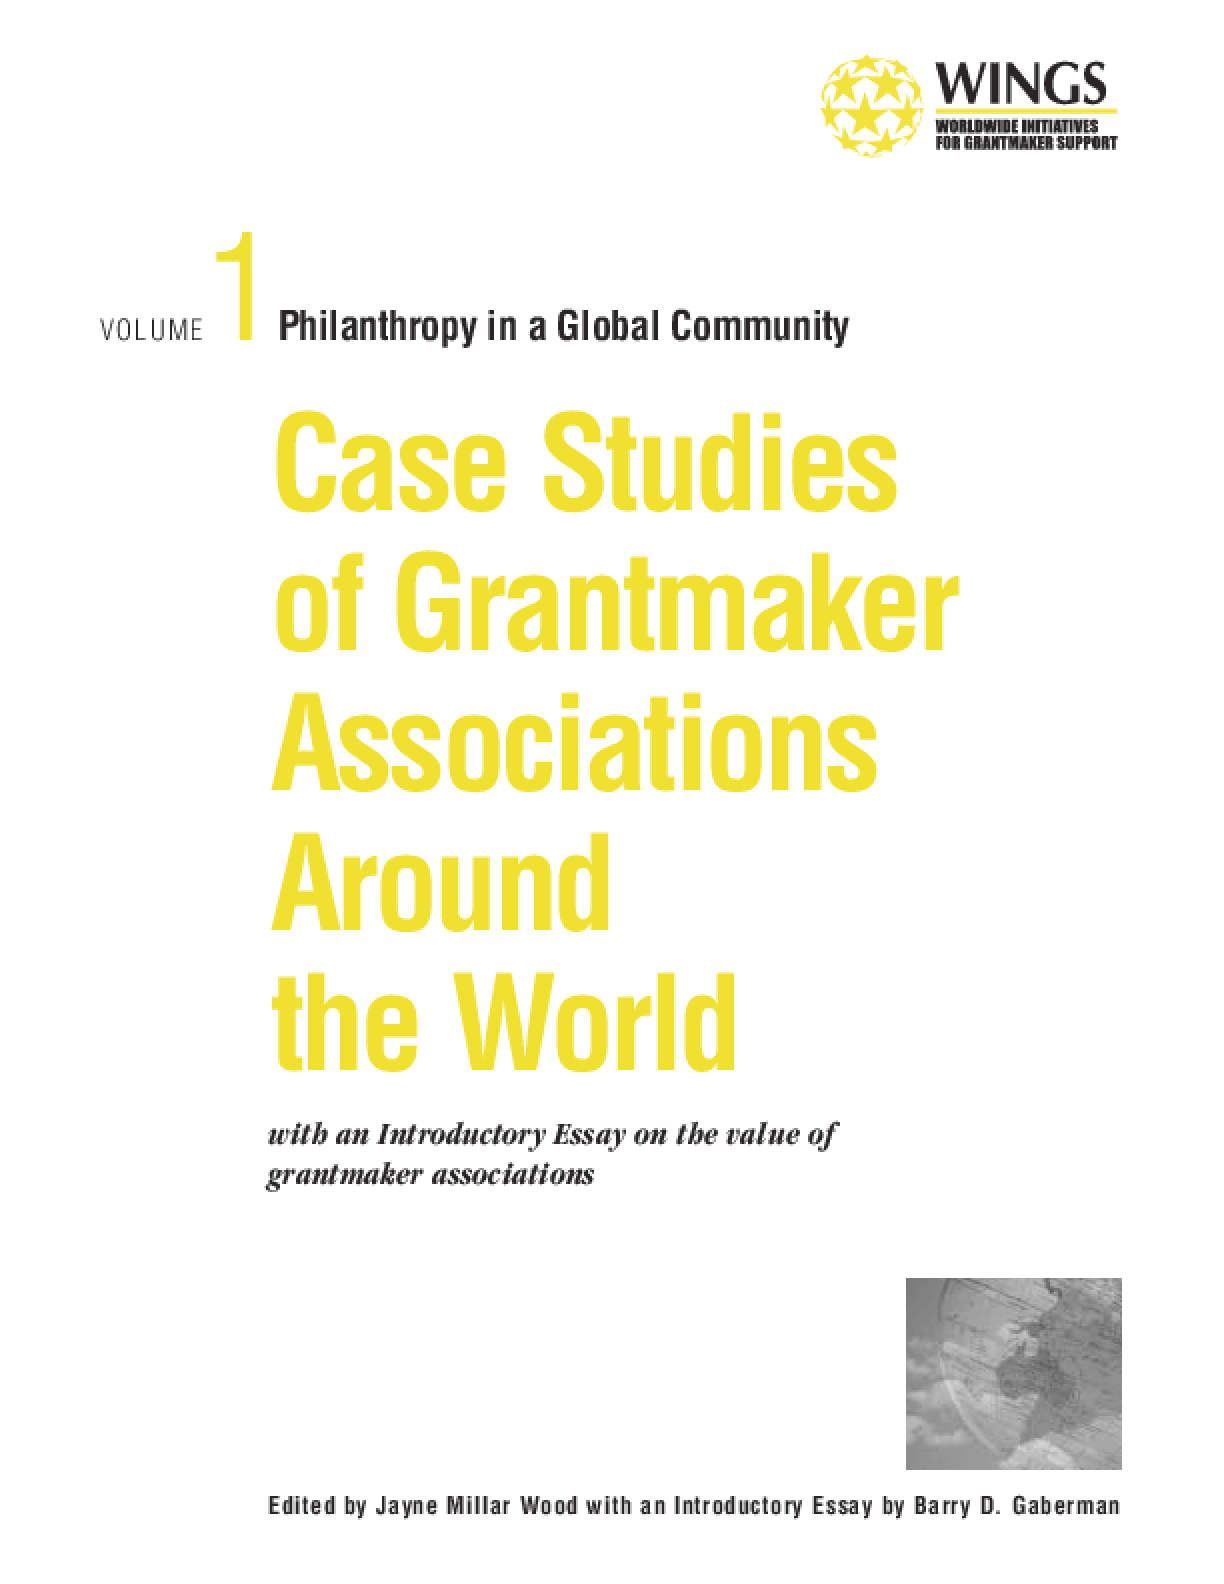 Philanthropy in a Global Community, Vol. 1 - Case Studies of Grantmaker Associations Around the World